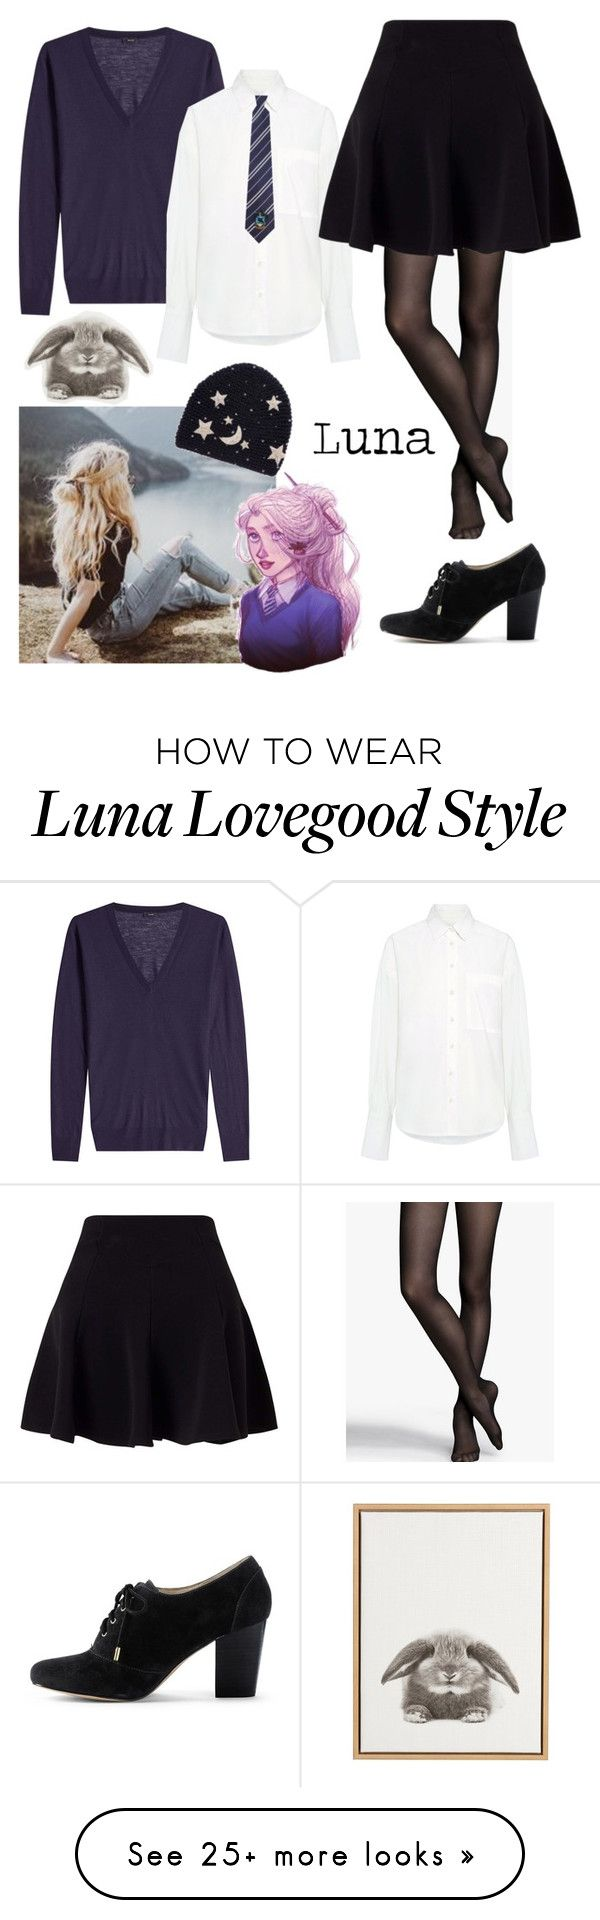 """""""Luna"""" by volitairia on Polyvore featuring GET LOST, Joseph, Sea, New York, Express, Miss Selfridge and Lands' End"""